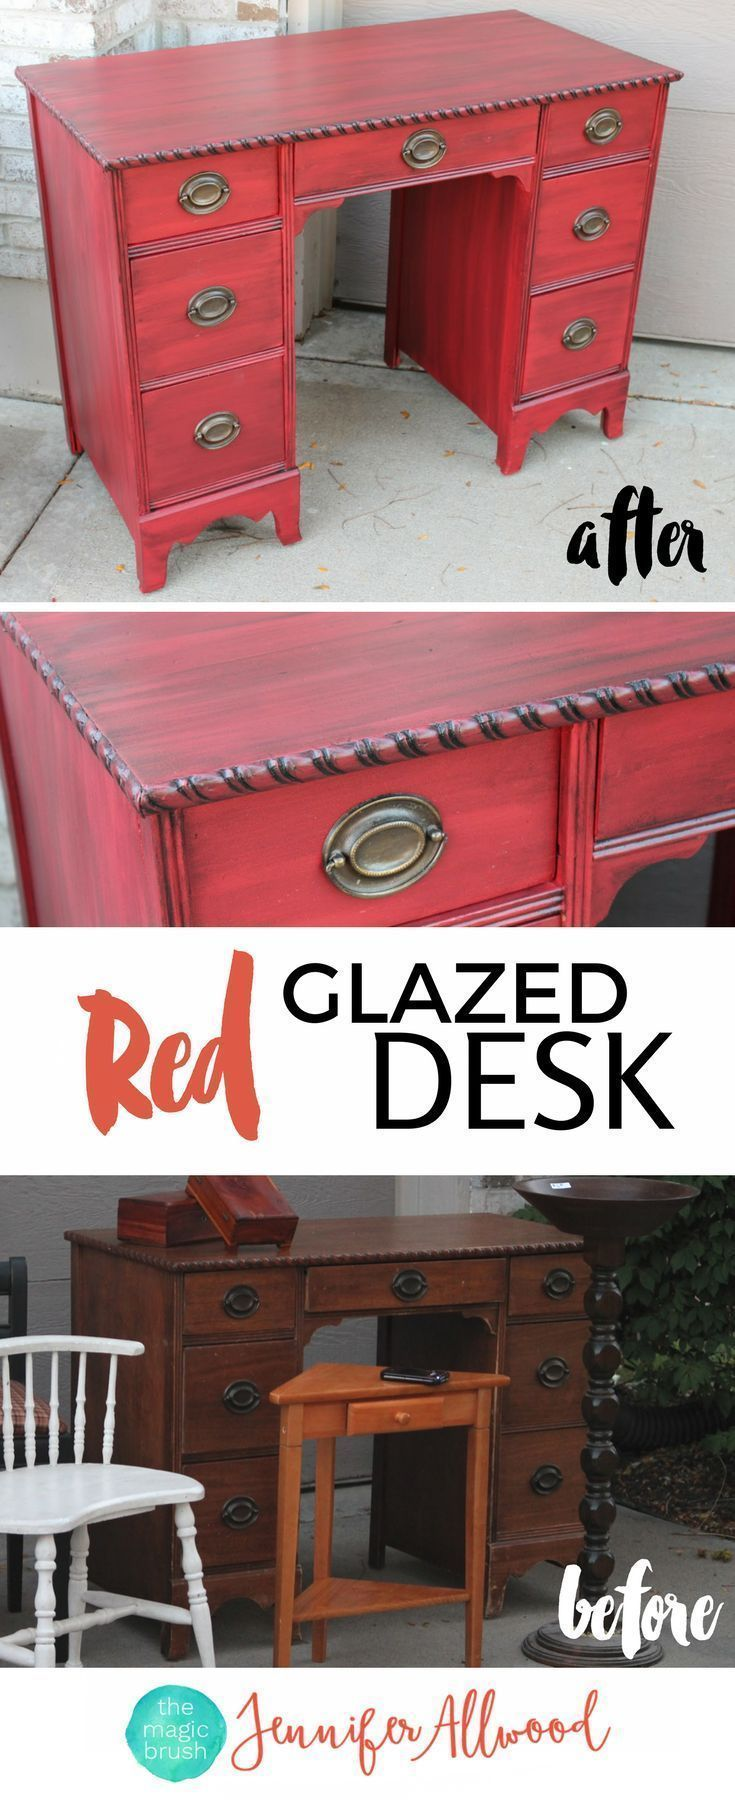 How to's : Red Glazed Desk Makeover by Jennifer Allwood | How to Paint Furniture | Red Painted Furniture Ideas | Red Bay Sherwin Williams | Glazed Furniture | Painted Desk Furniture Before and After #furniture #paintedfurniture #painting #diy #diyhomedecor #makeover #howto